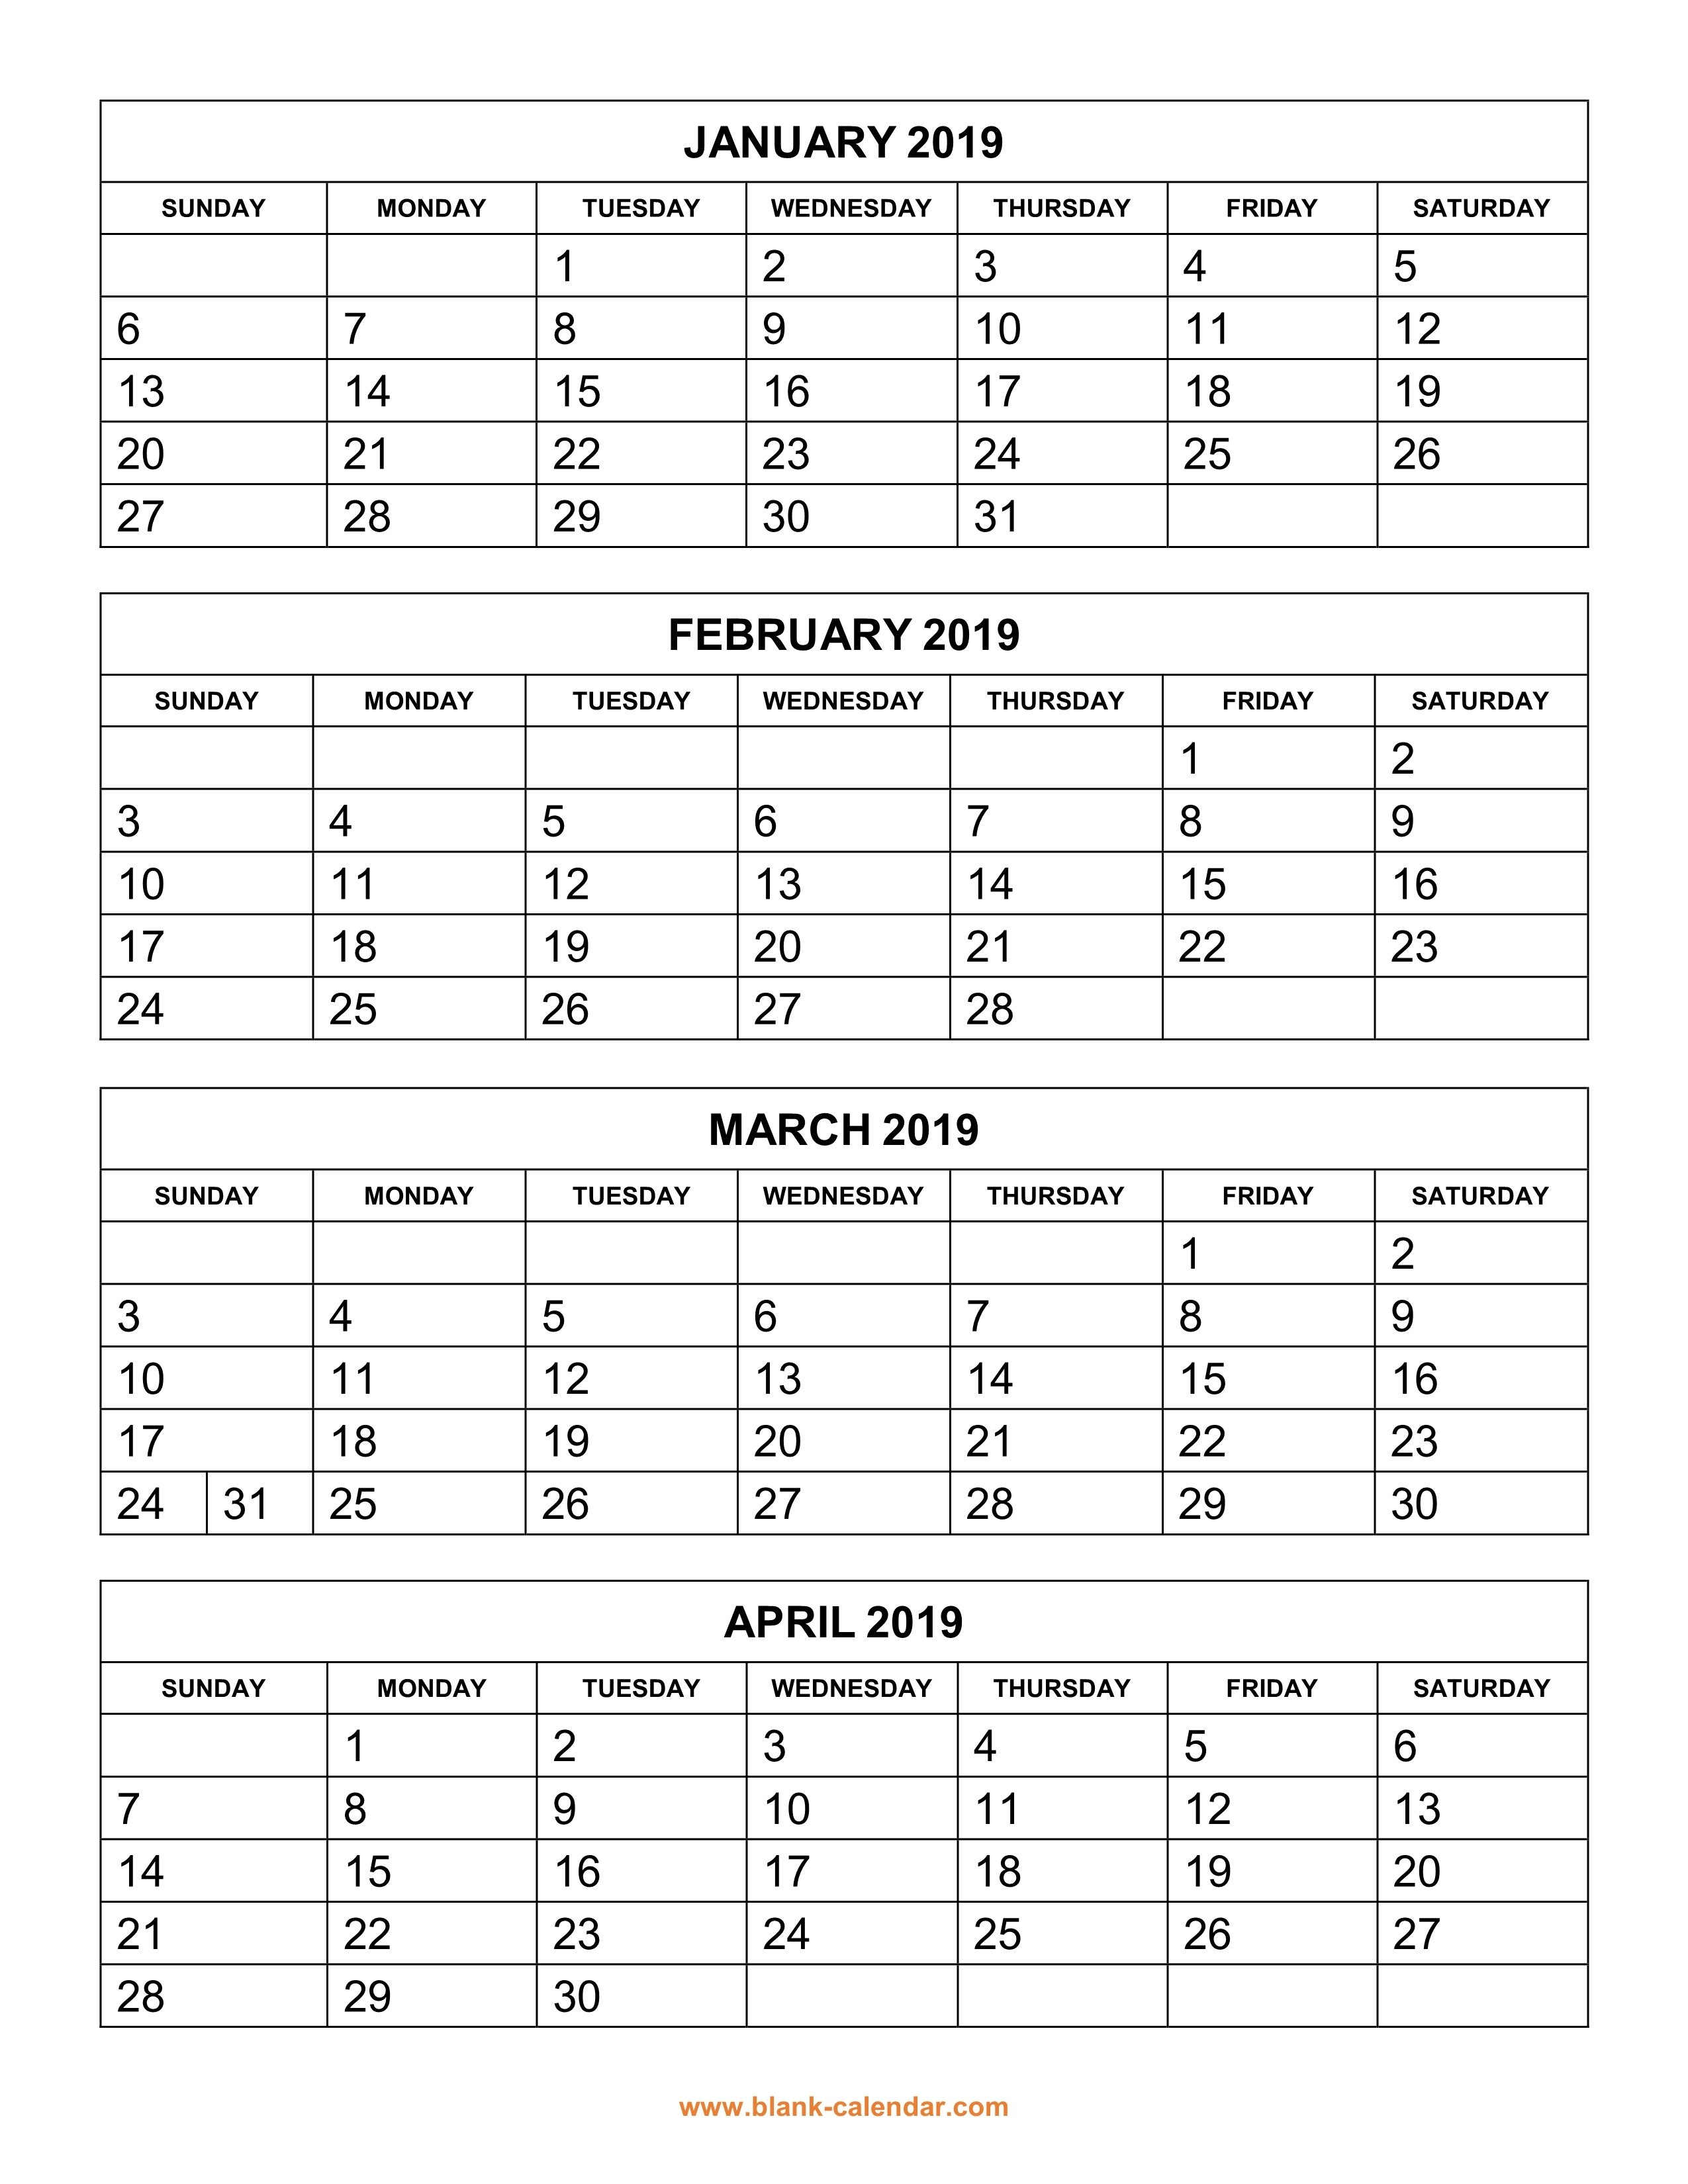 Free Download Printable Calendar 2019, 4 Months Per Page, 3 Pages Calendar 2019 All Months